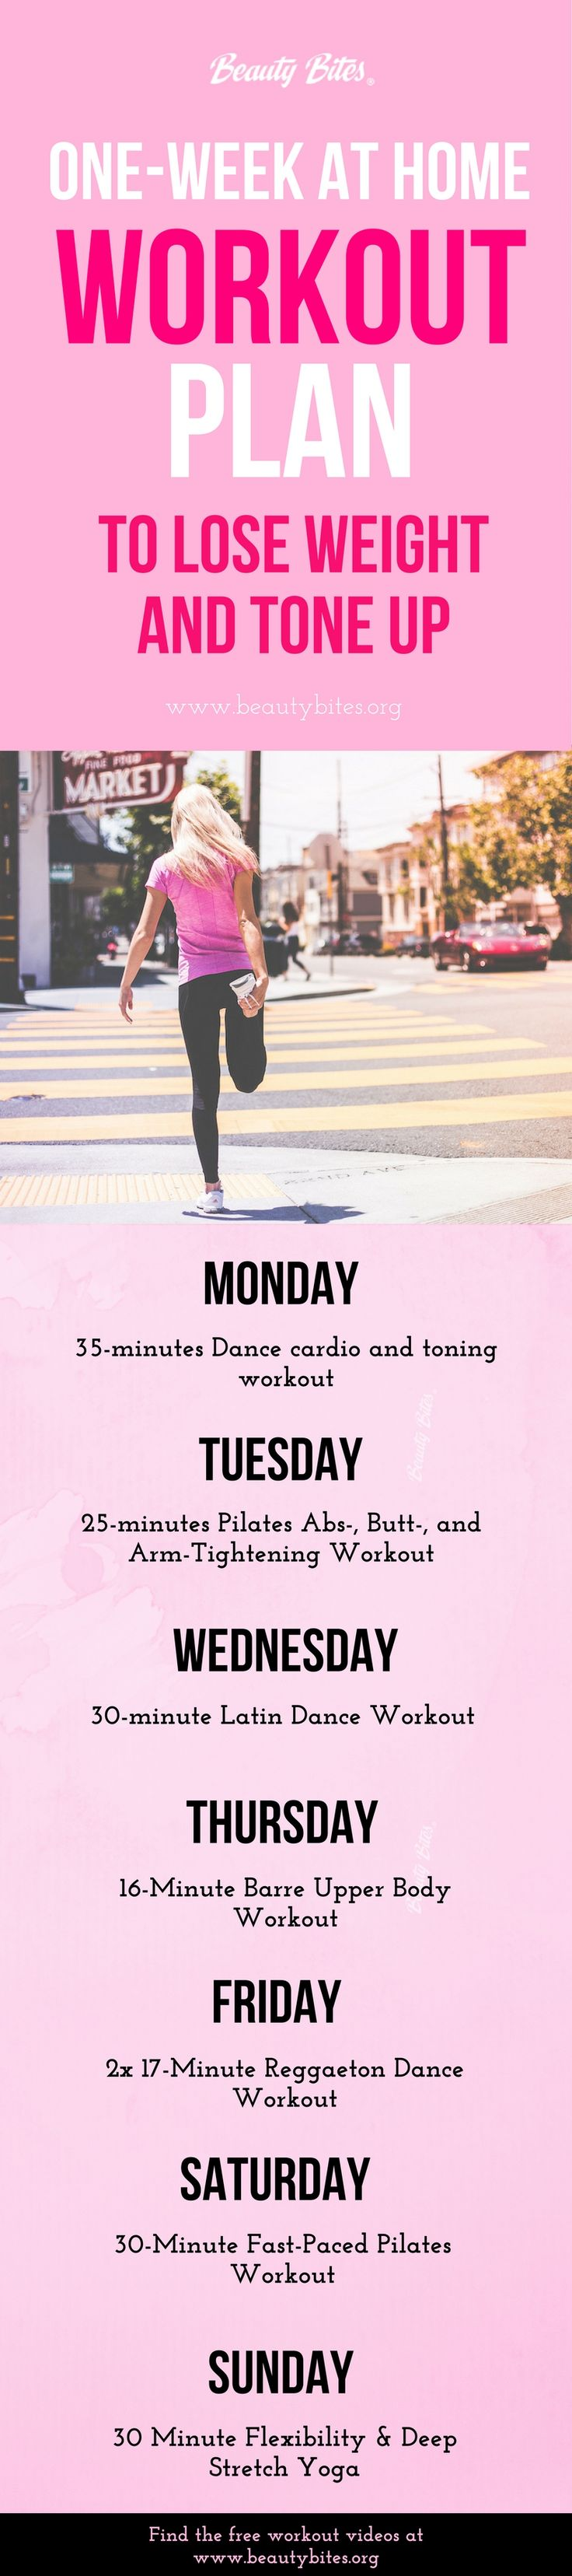 The videos in this workout plan for fat loss are challenging, but also a lot of fun! If you're looking for a free and FUN weekly workout plan to lose weight and get toned at home, you need to try this! There are dance workouts, pilates & barre exercises + yoga stretching routine.  Healthy Recipes | Healthy Habits | Workout Plans For Beginners | Weight Loss Tips